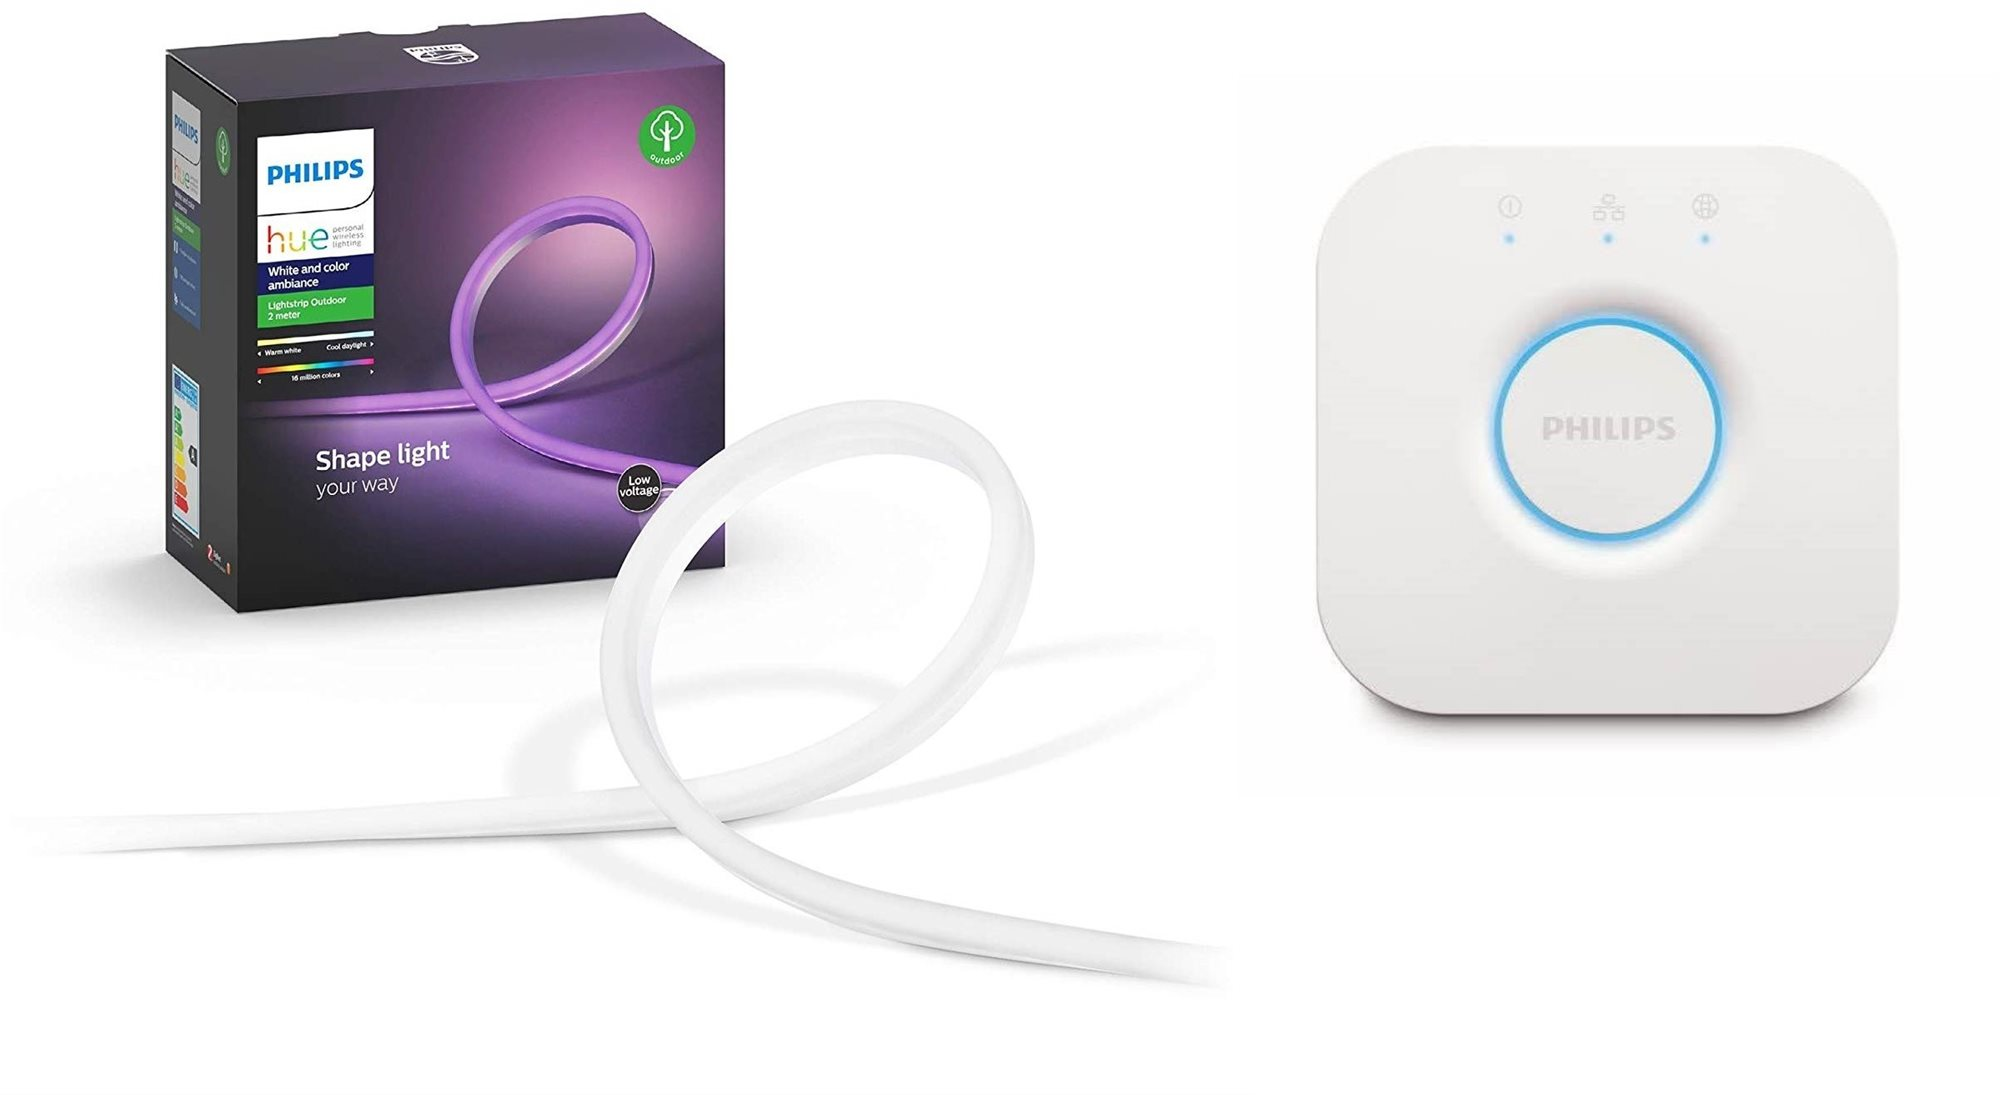 Philips Hue White and Color Ambiance Outdoor LightStrips 2M + Philips Hue Bridge 2.0